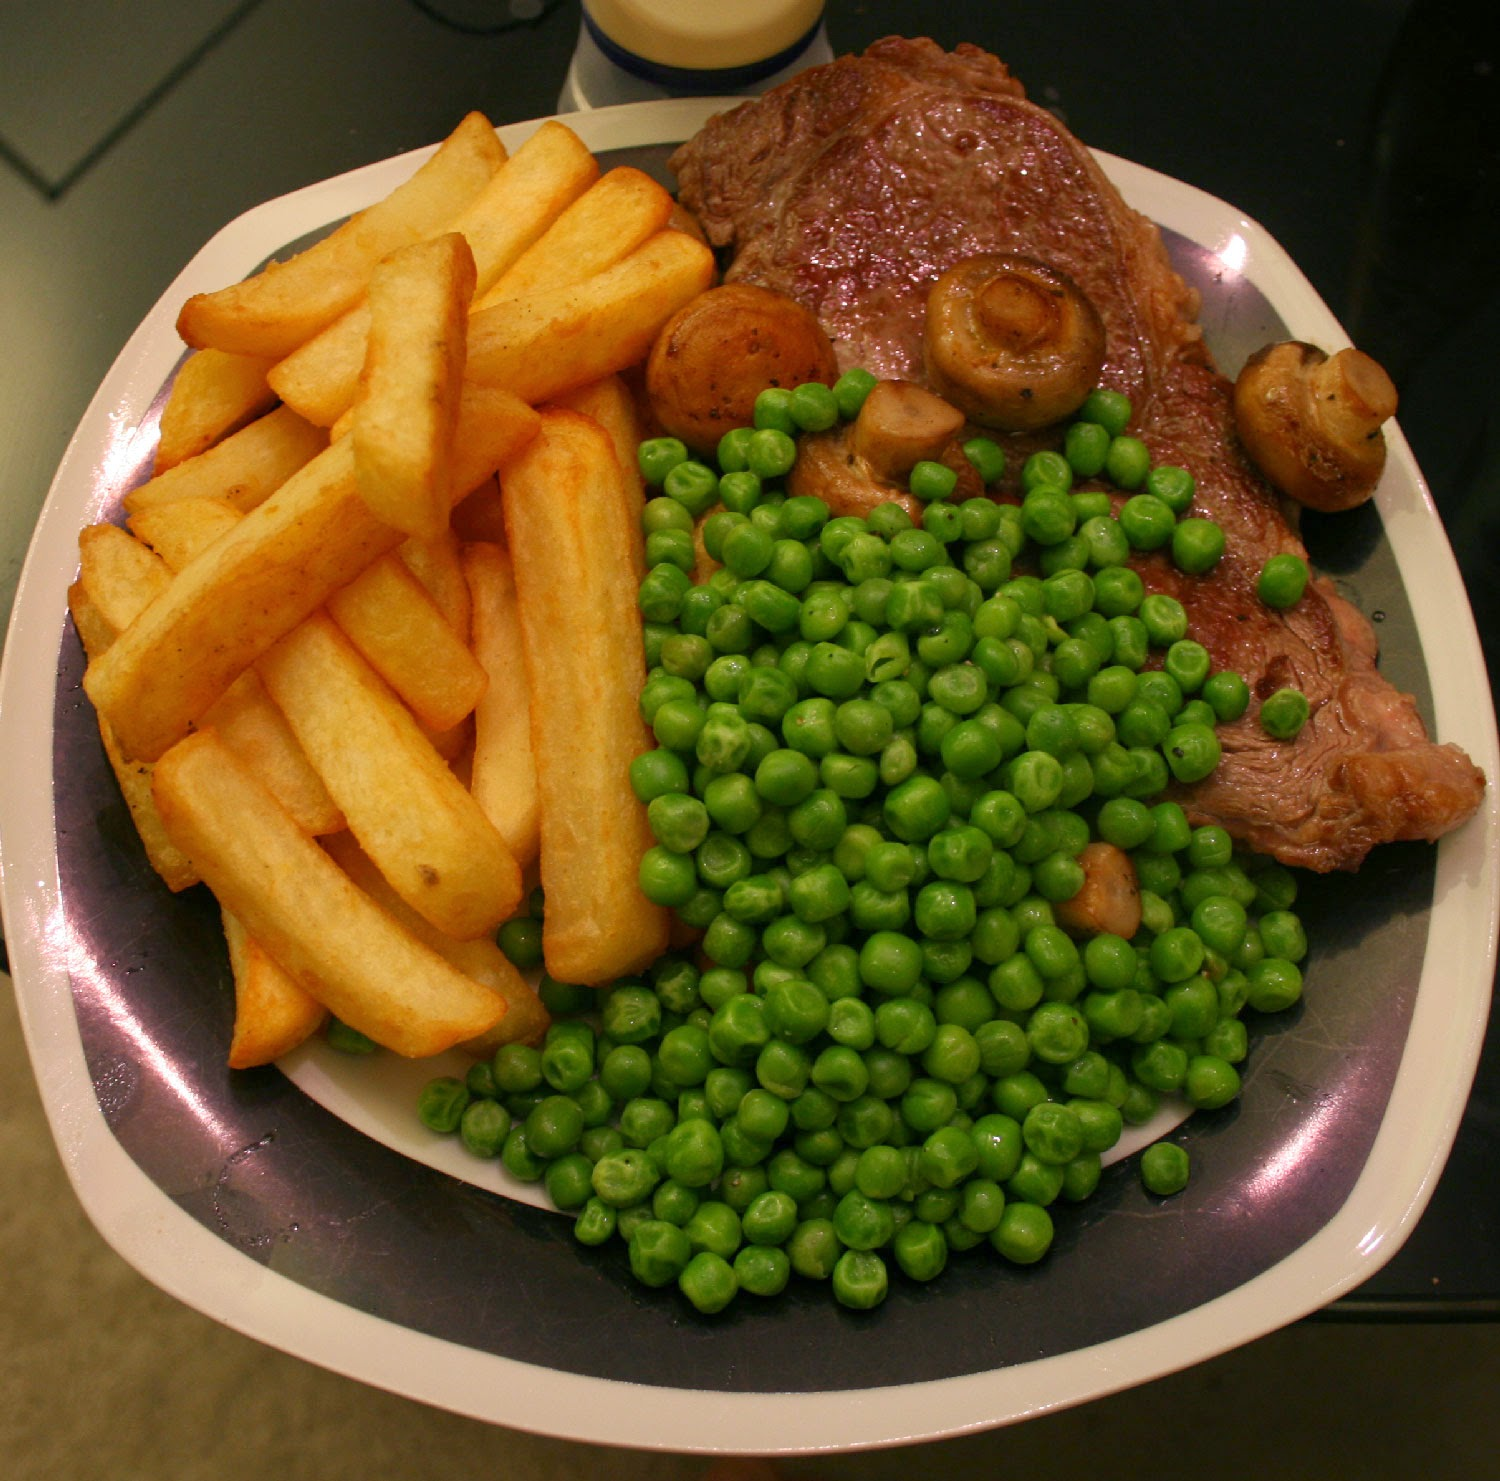 Steak and chips with peas and mushrooms